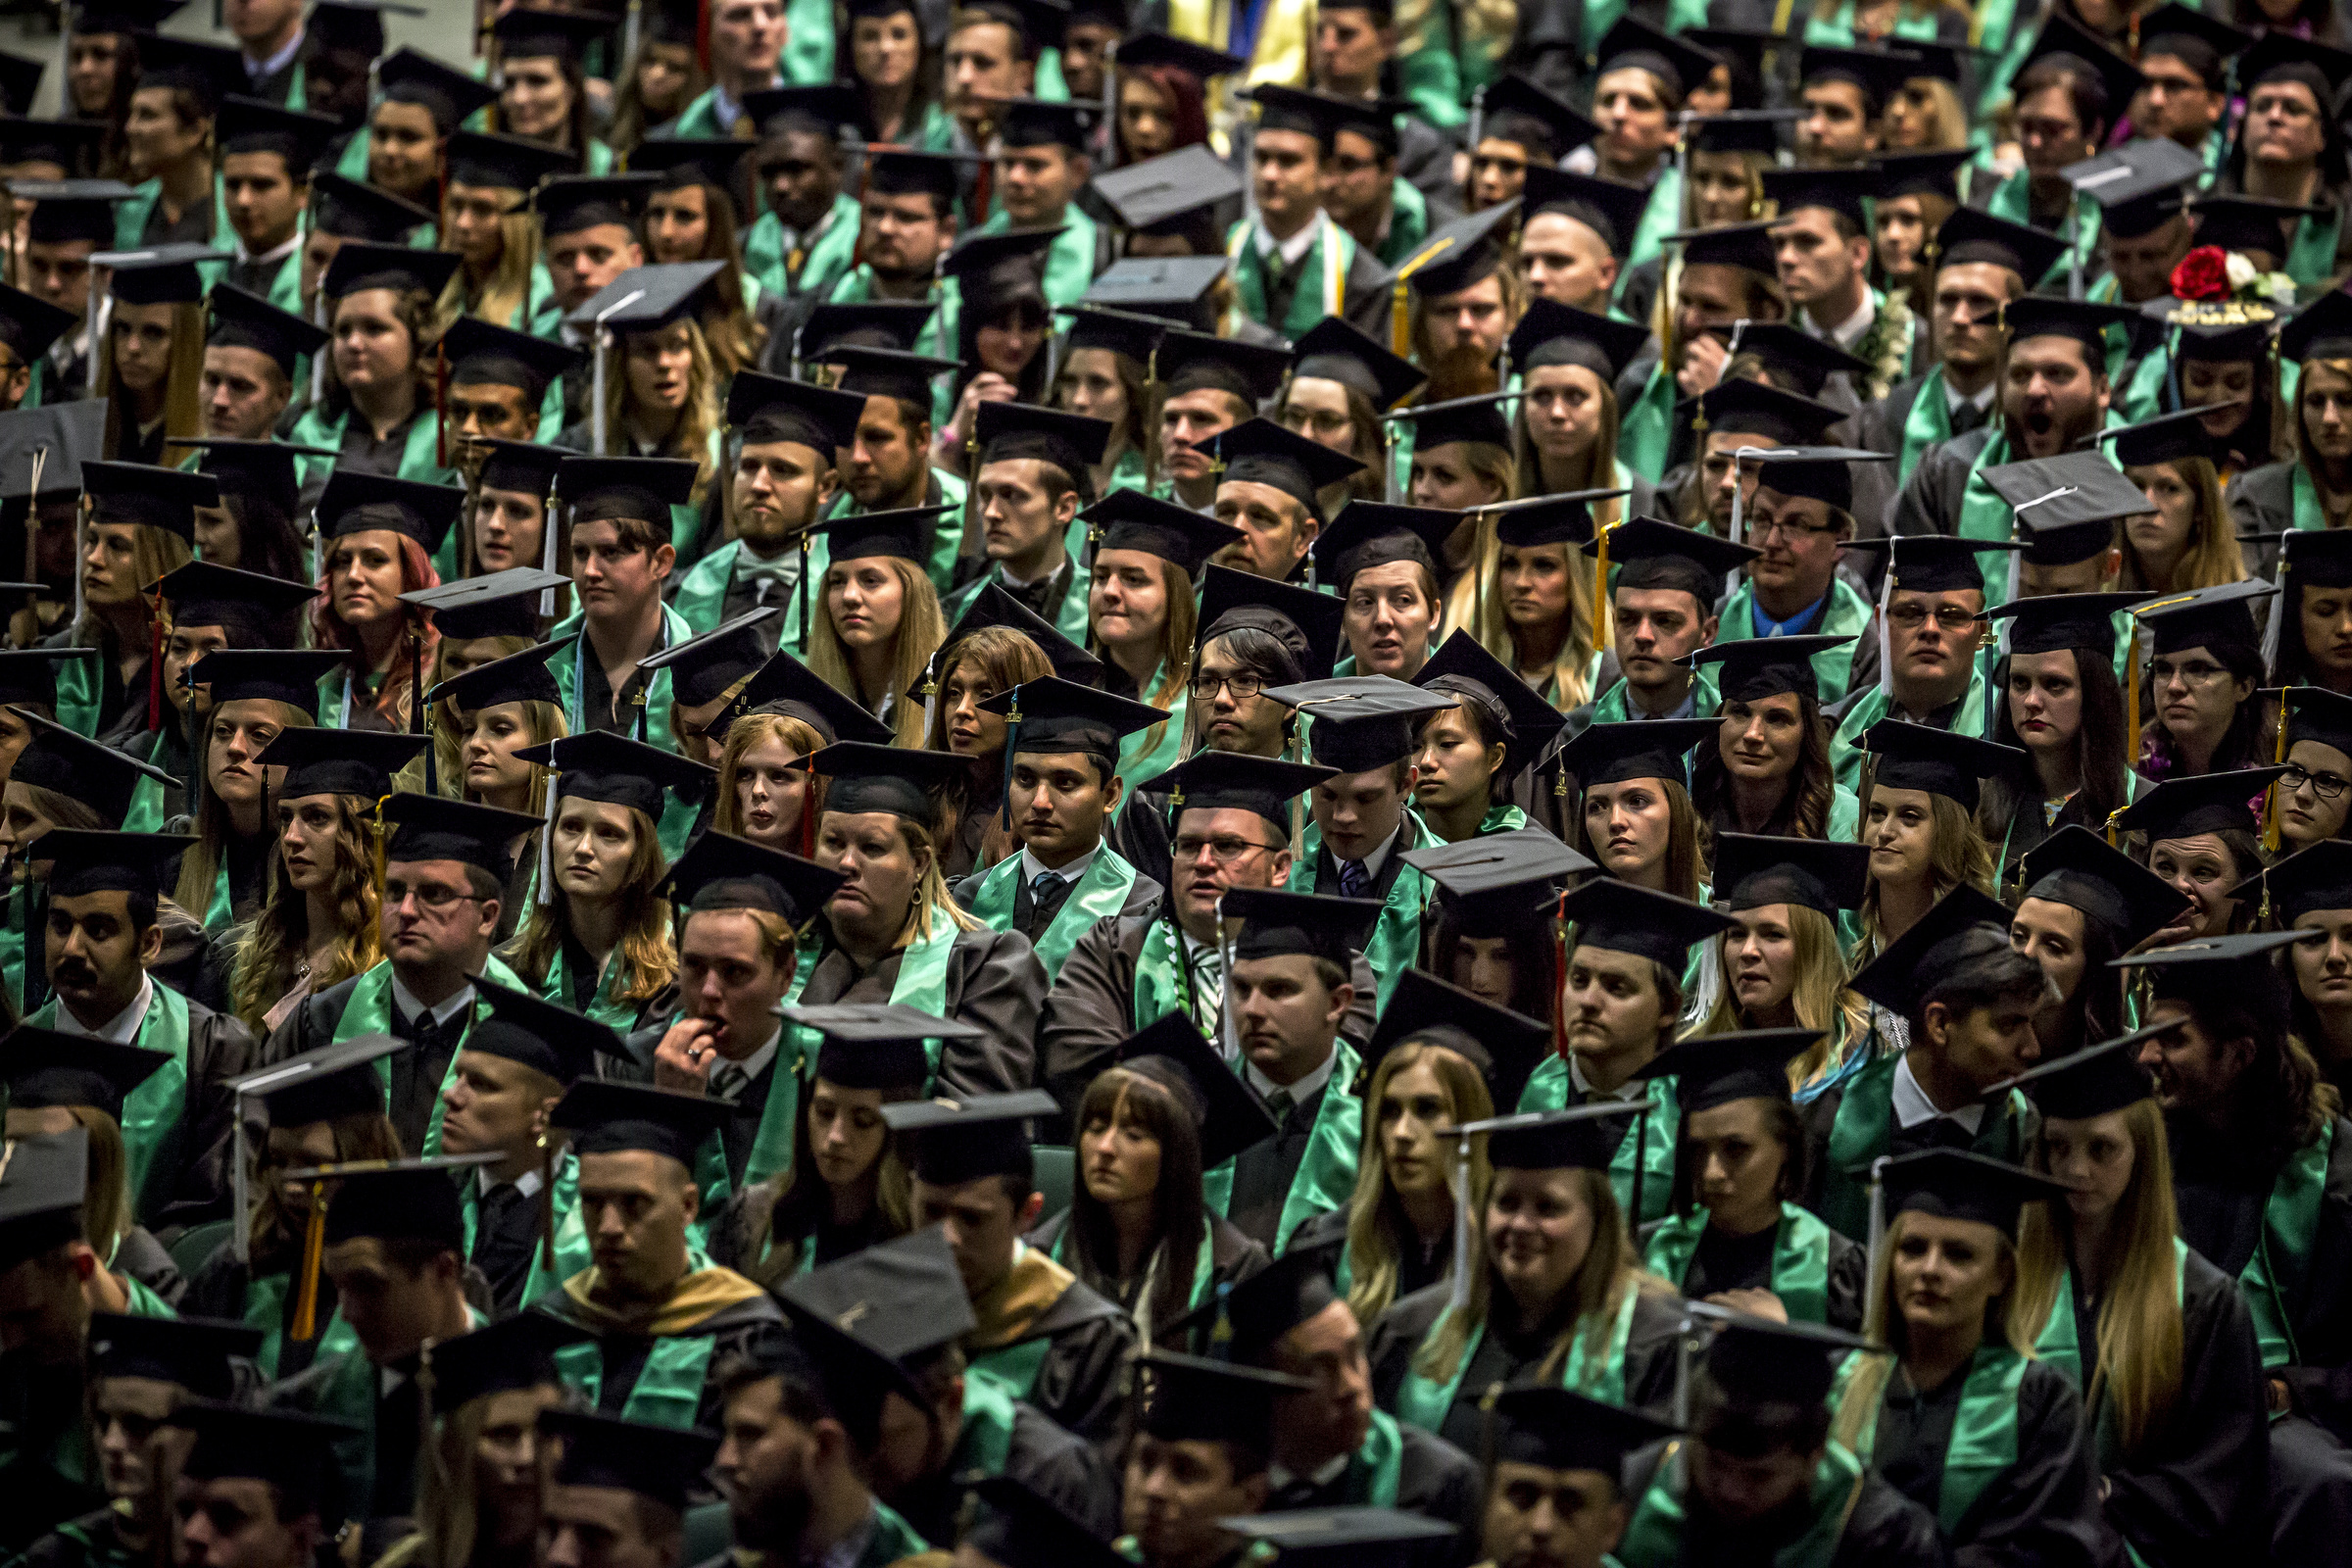 Students gather for the Utah Valley University commencement ceremony on Thursday, May 3, 2018, in Orem.